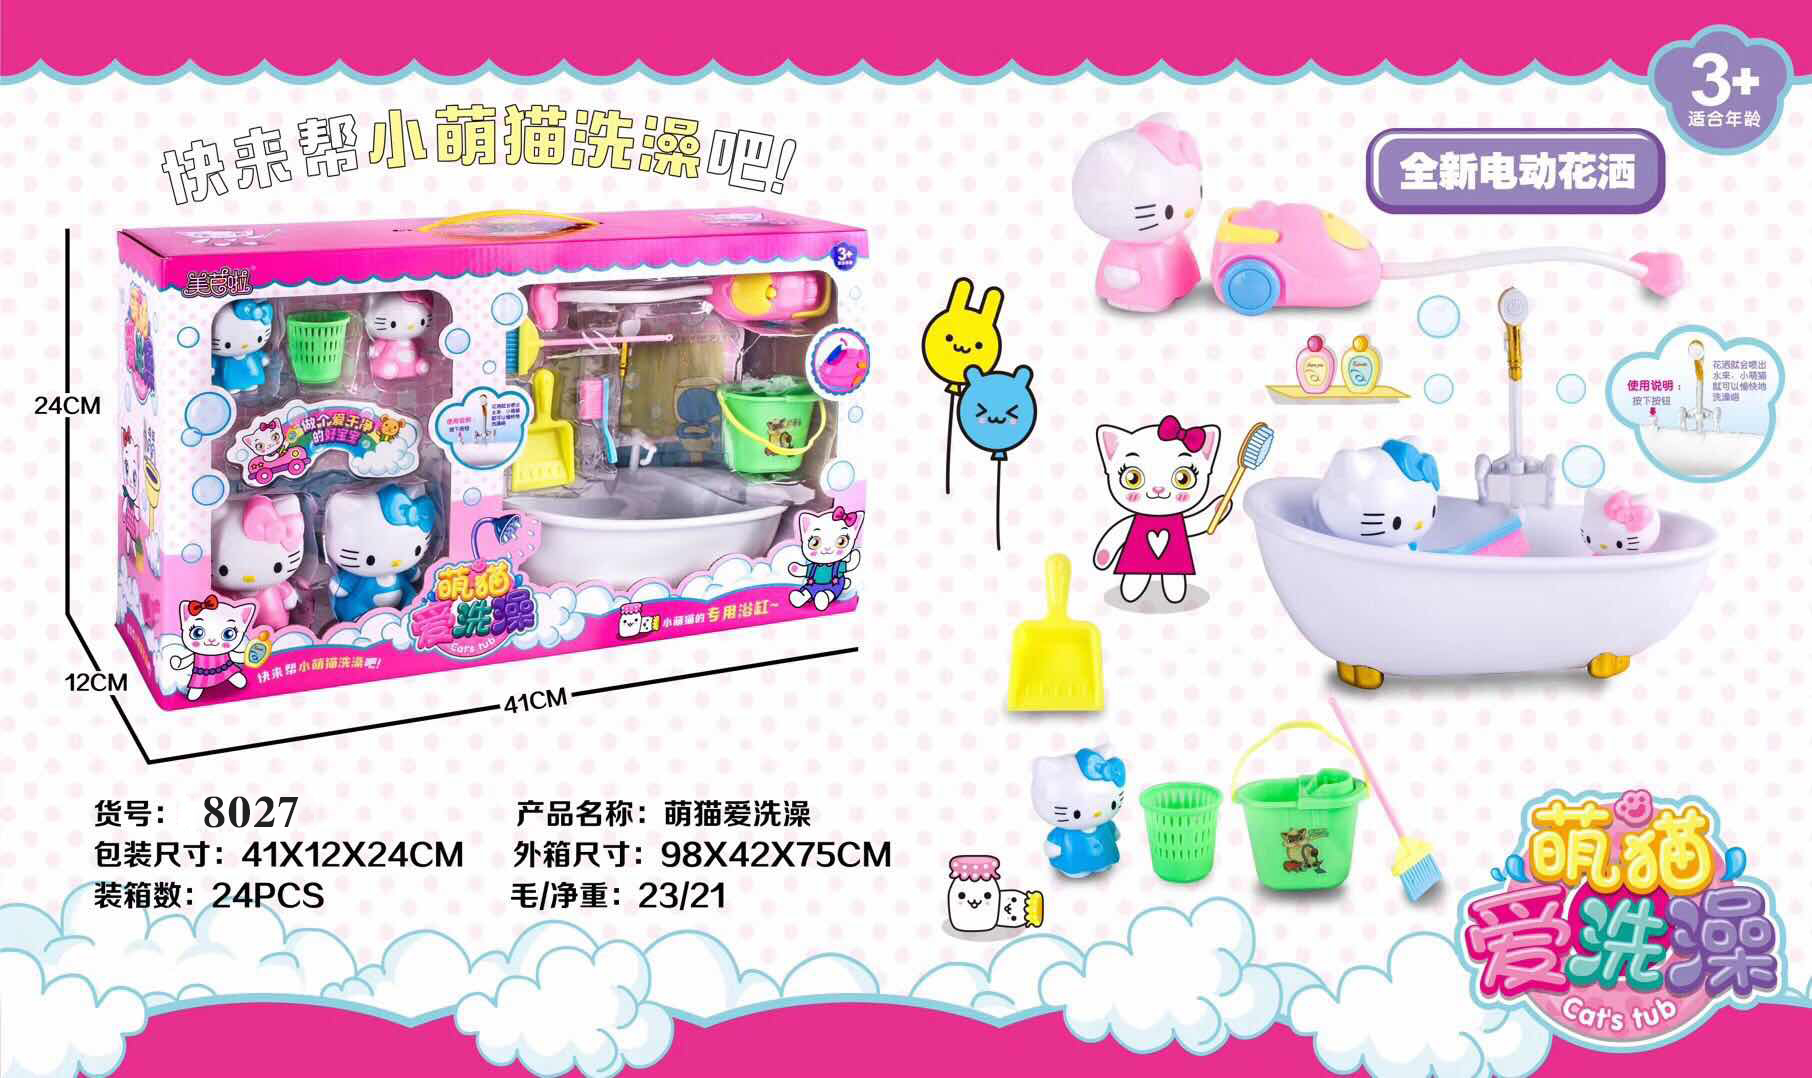 Supply Hello Kitty Goes Through The